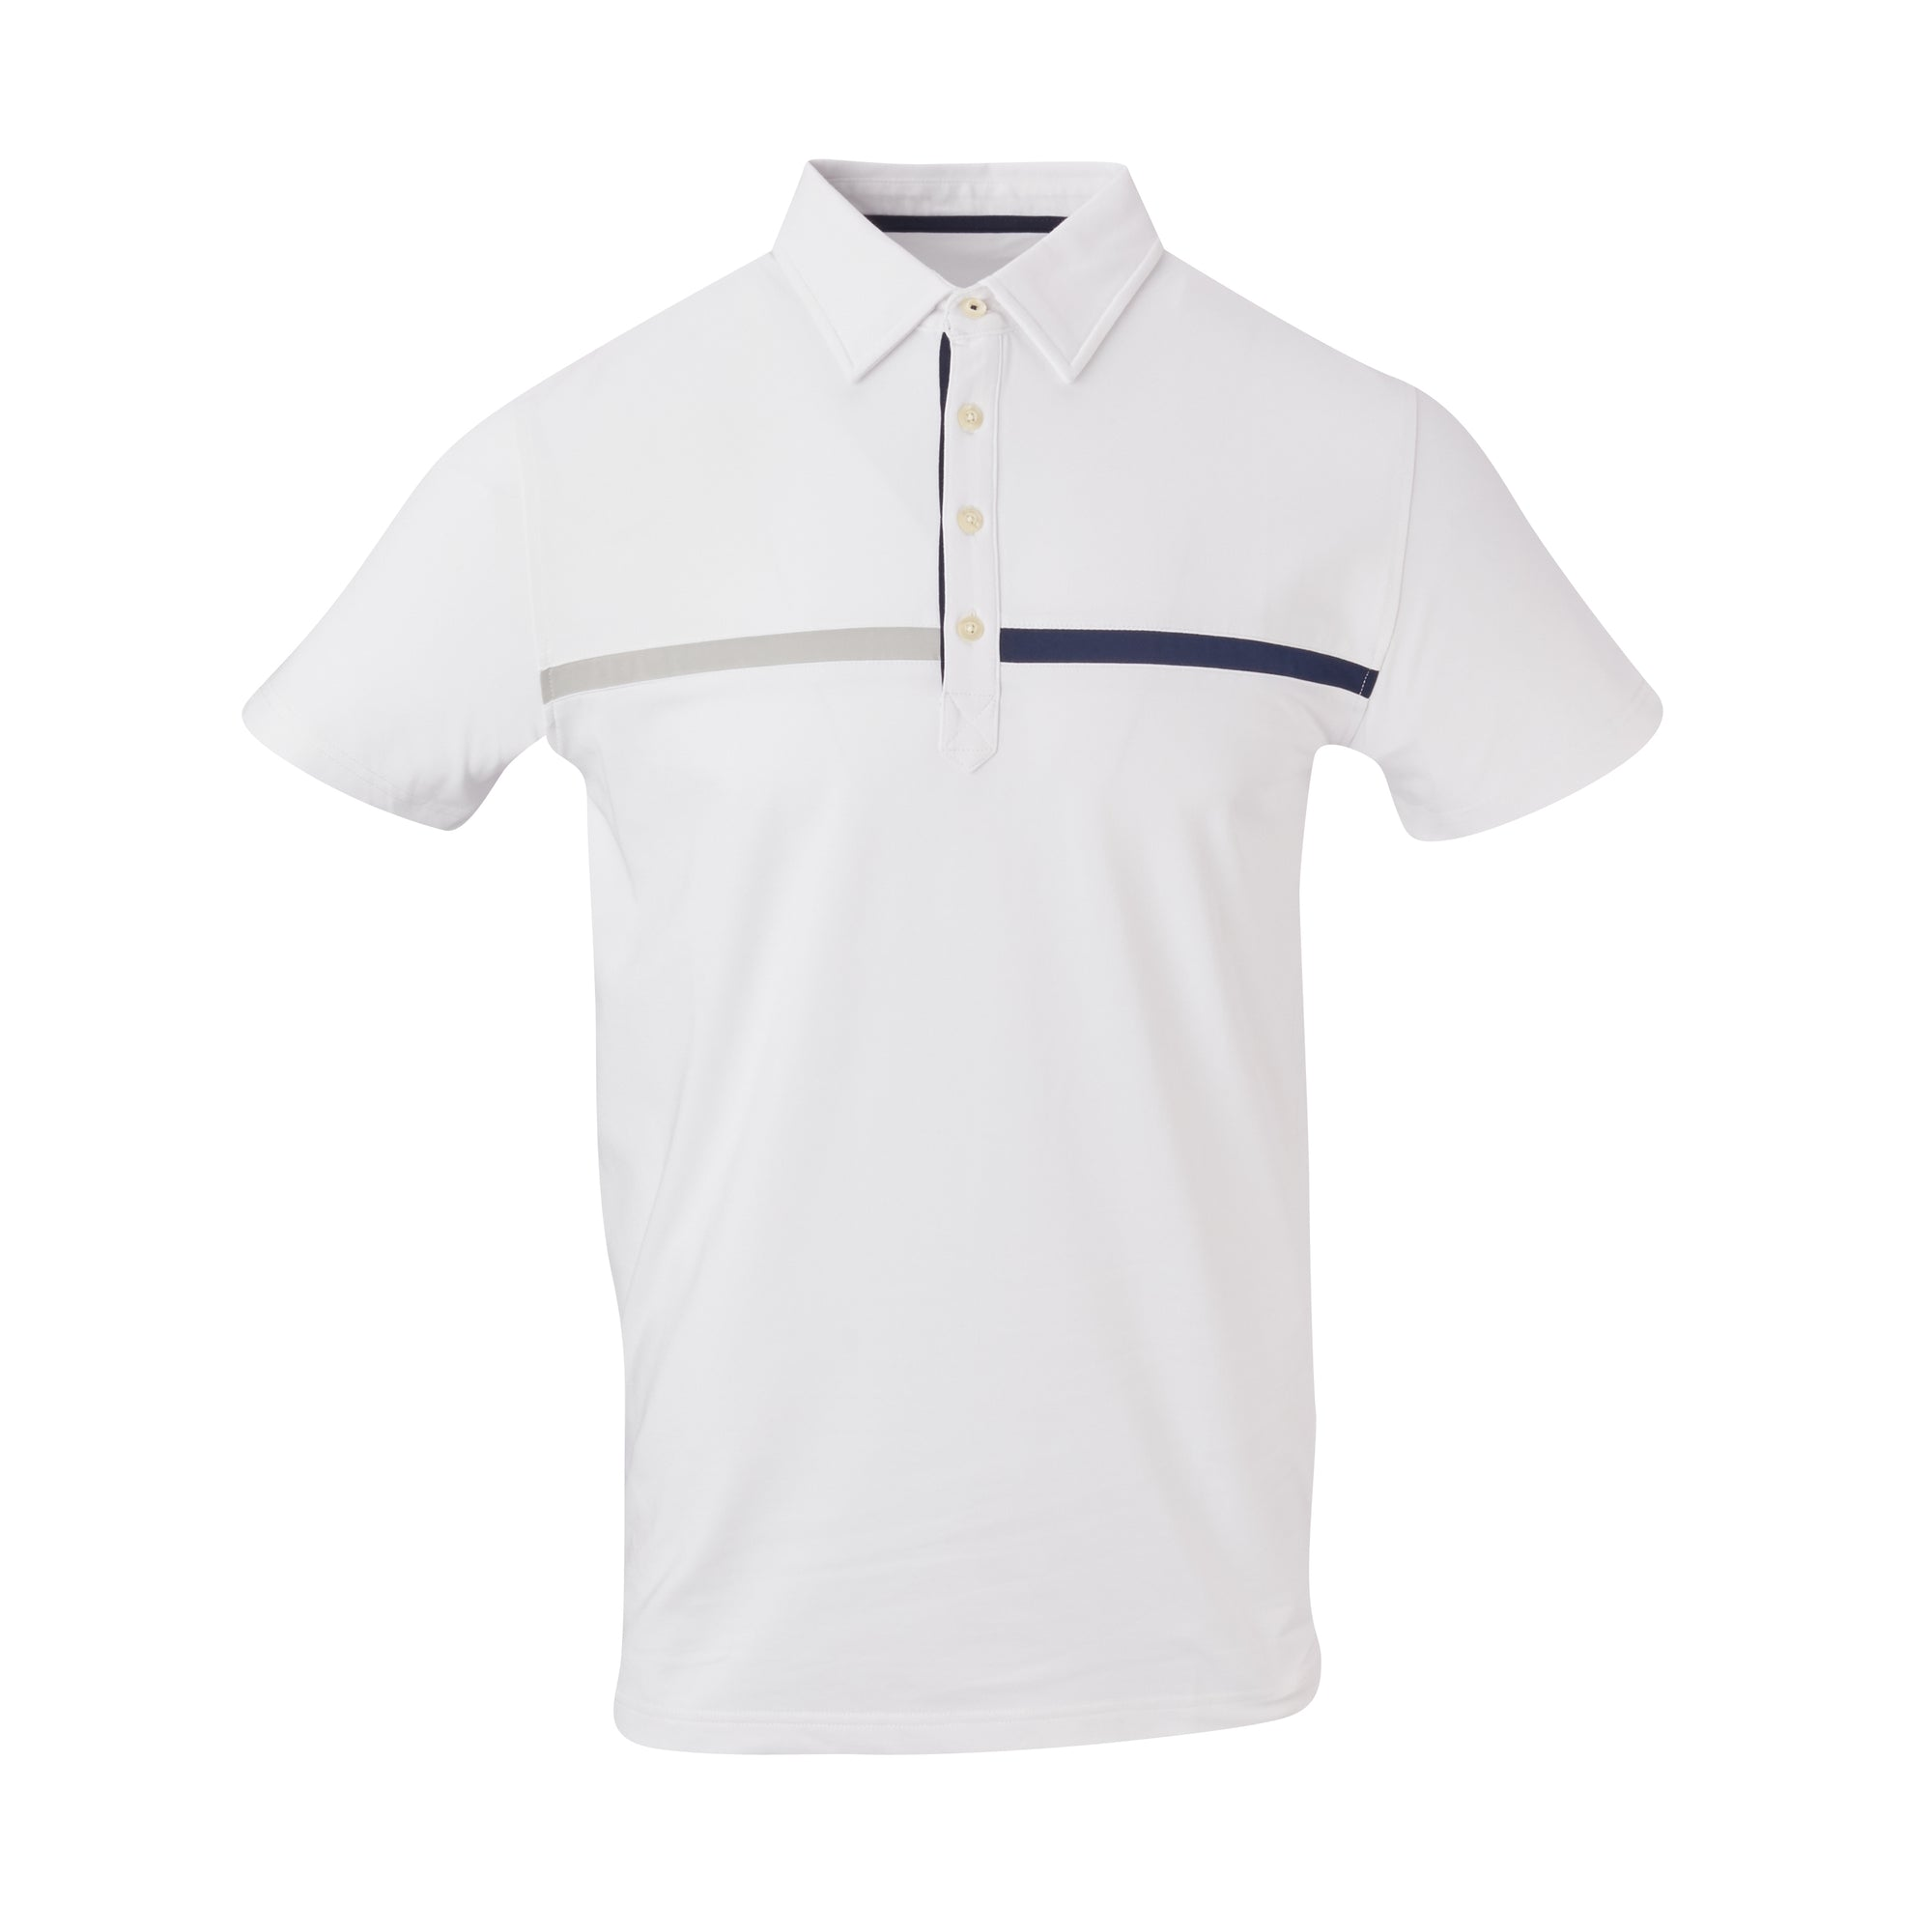 THE SNEAD LUXTEC COLOR BLOCK POLO - White IS72420